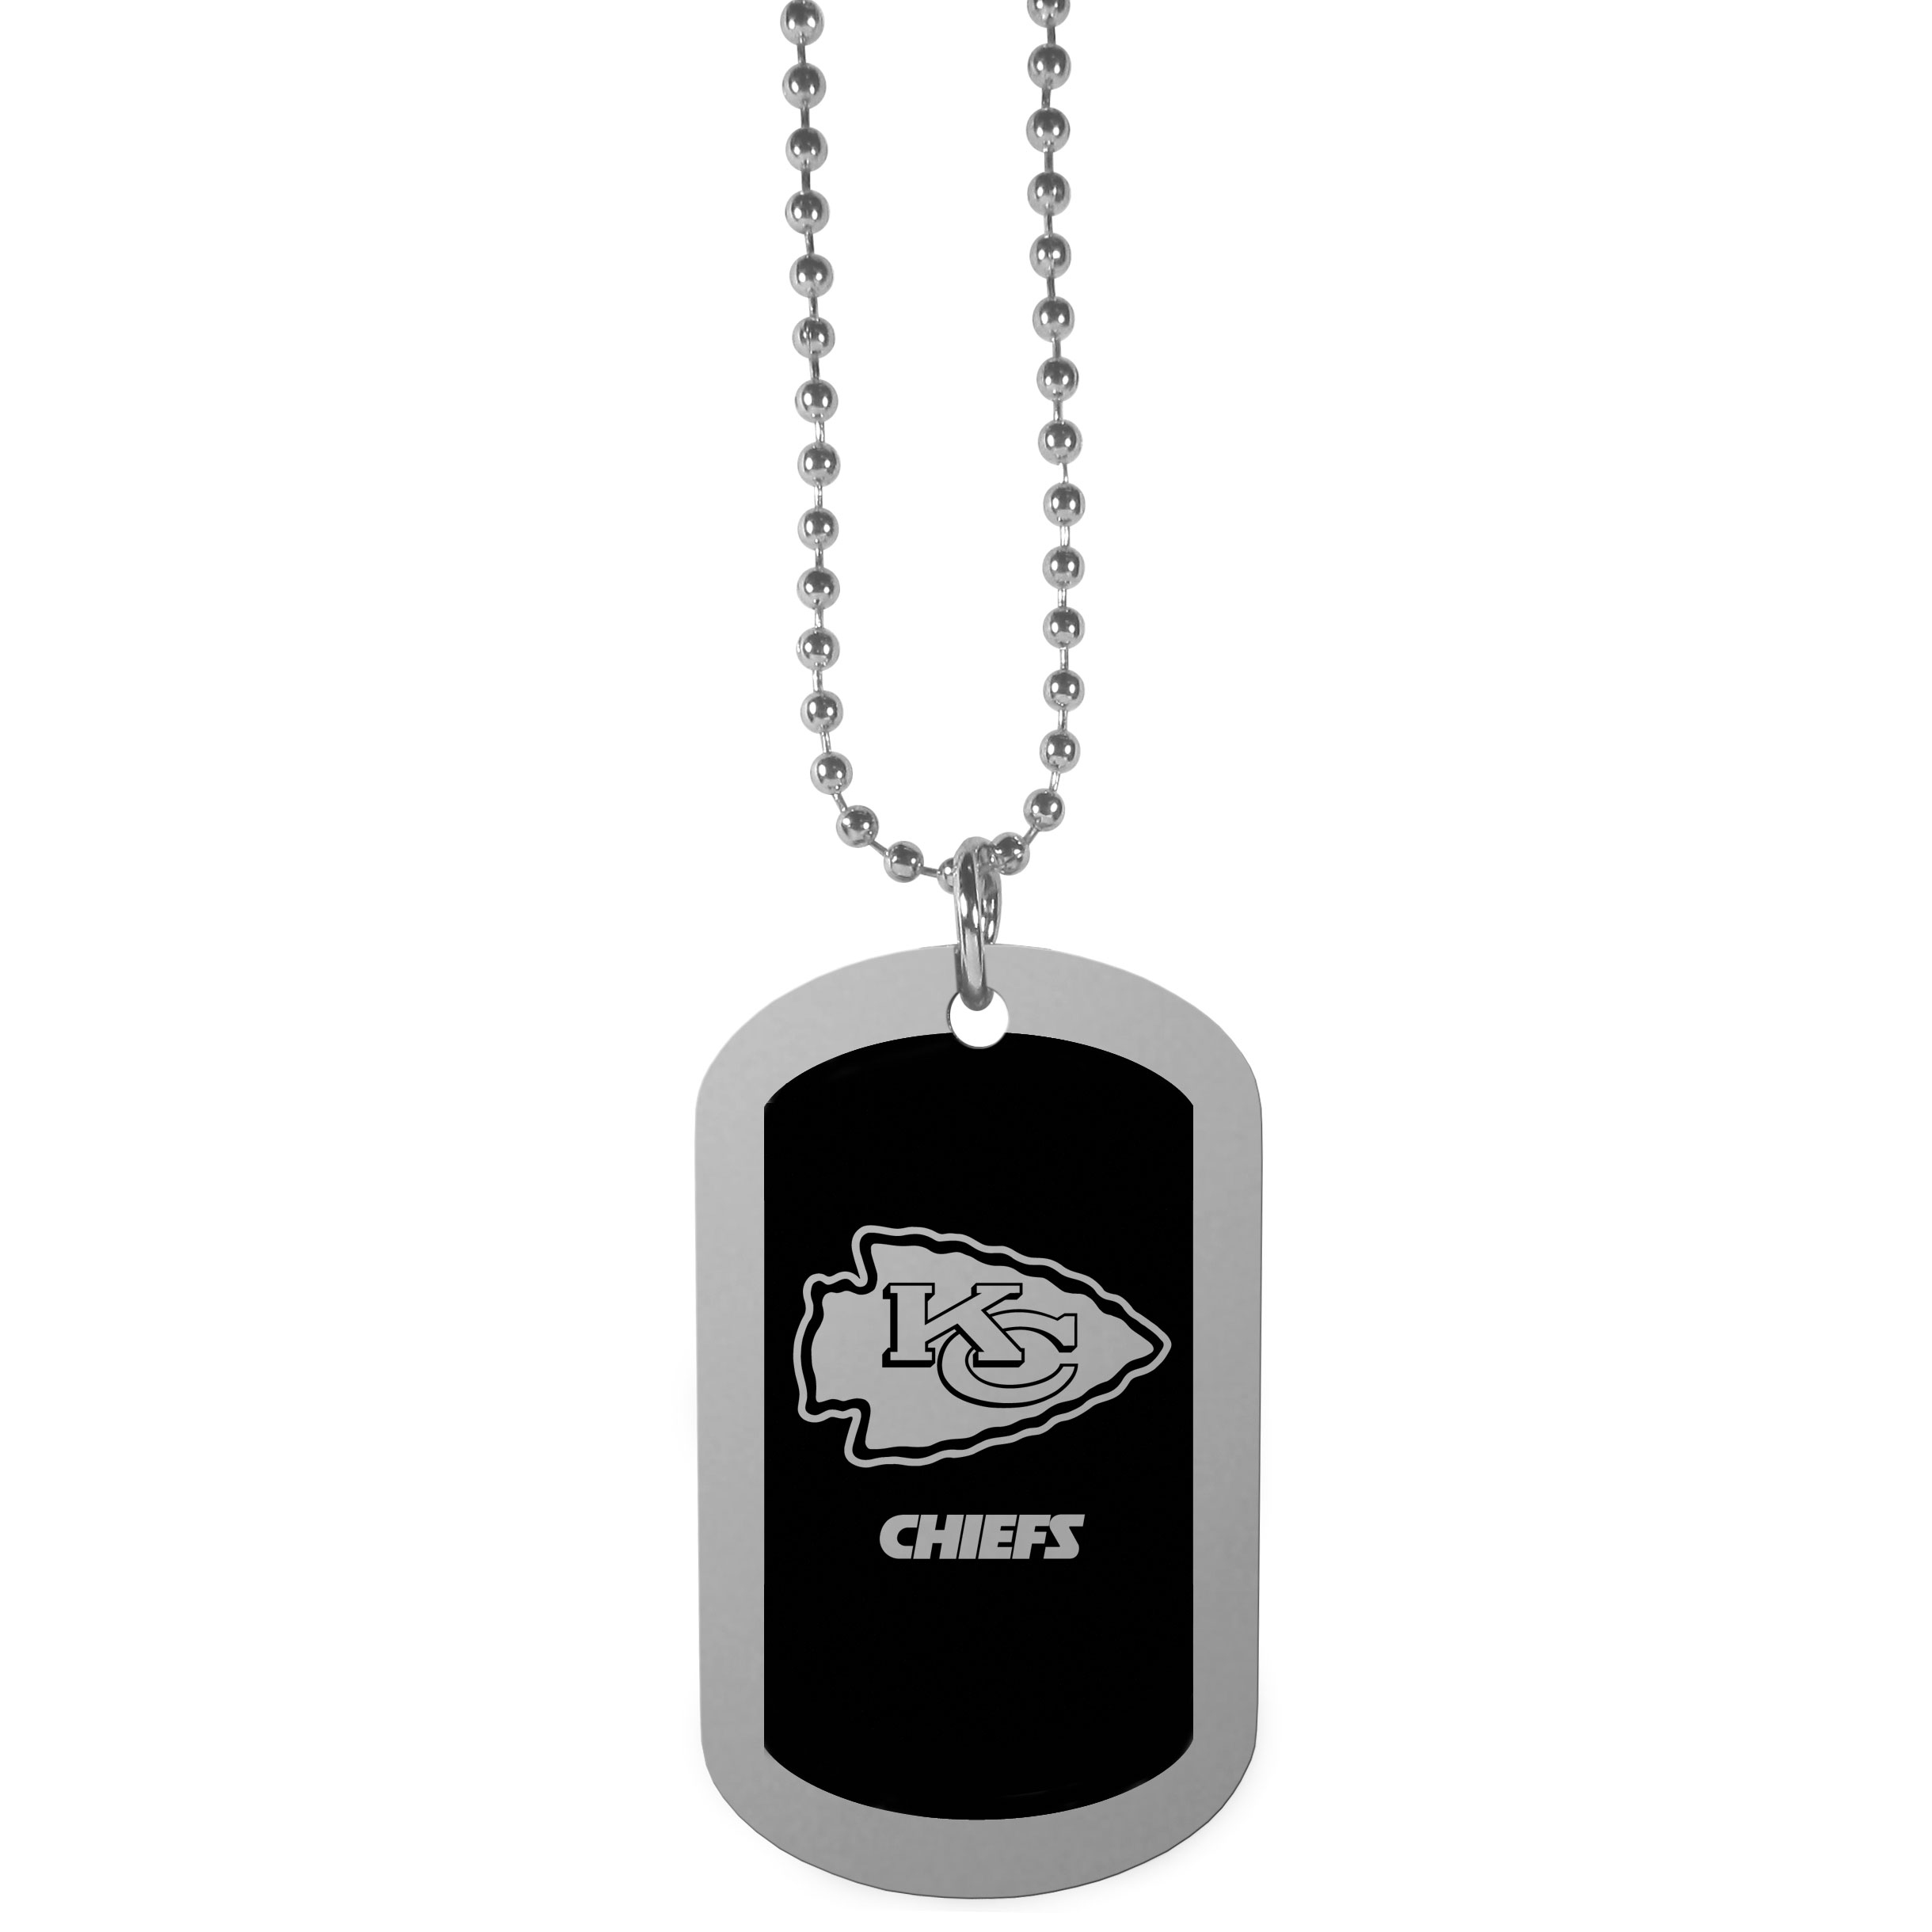 Kansas City Chiefs Chrome Tag Necklace - Dog tag necklaces are a fashion statement that is here to stay. The sporty version of the classic tag features a black printed over a high polish tag to create a bold and sporty look. The tag comes on a 26 inch ball chain with a ball and joint clasp. Any Kansas City Chiefs would be proud to wear this attractive fashion accessory.